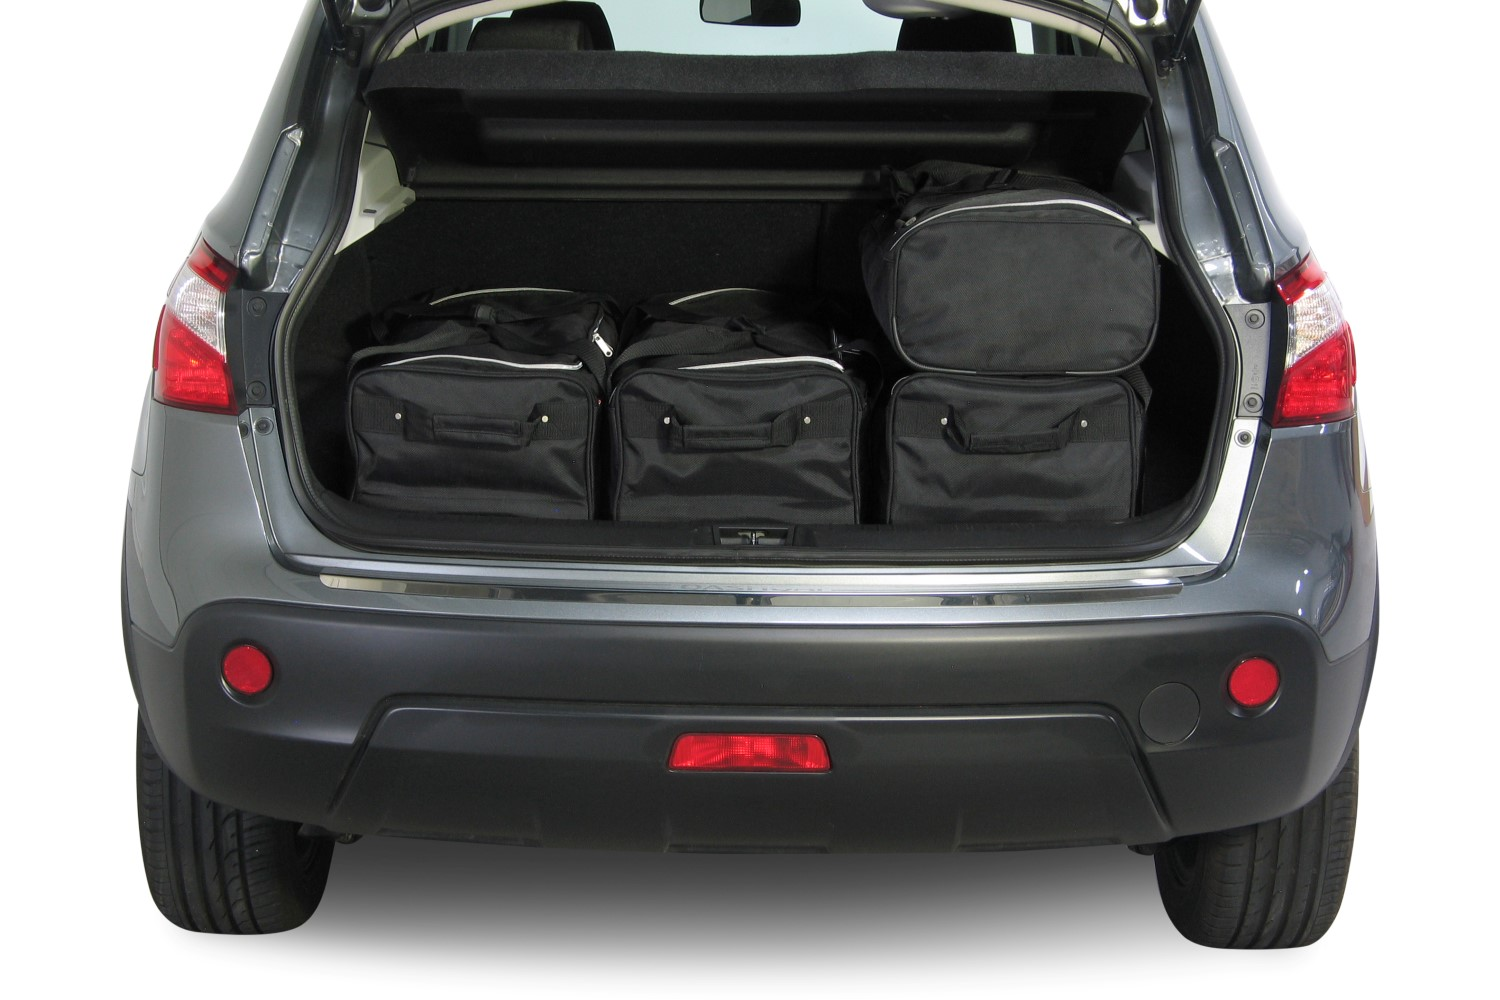 qashqai nissan qashqai j10 2007 2013 car bags set de sacs de voyage. Black Bedroom Furniture Sets. Home Design Ideas